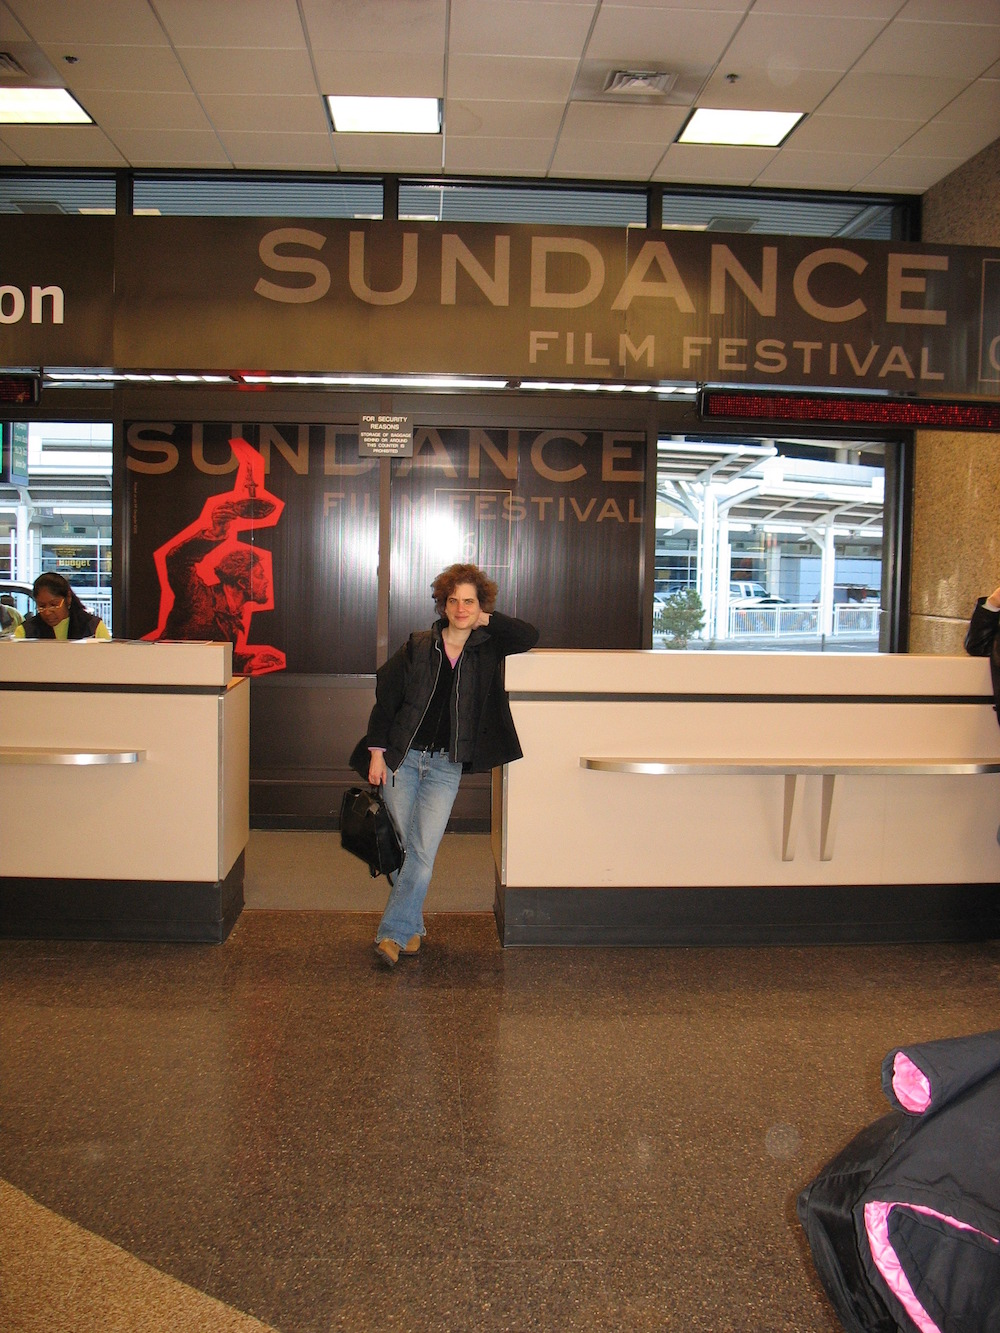 Salt Lake City Airport - awaiting the Sundance Shuttle